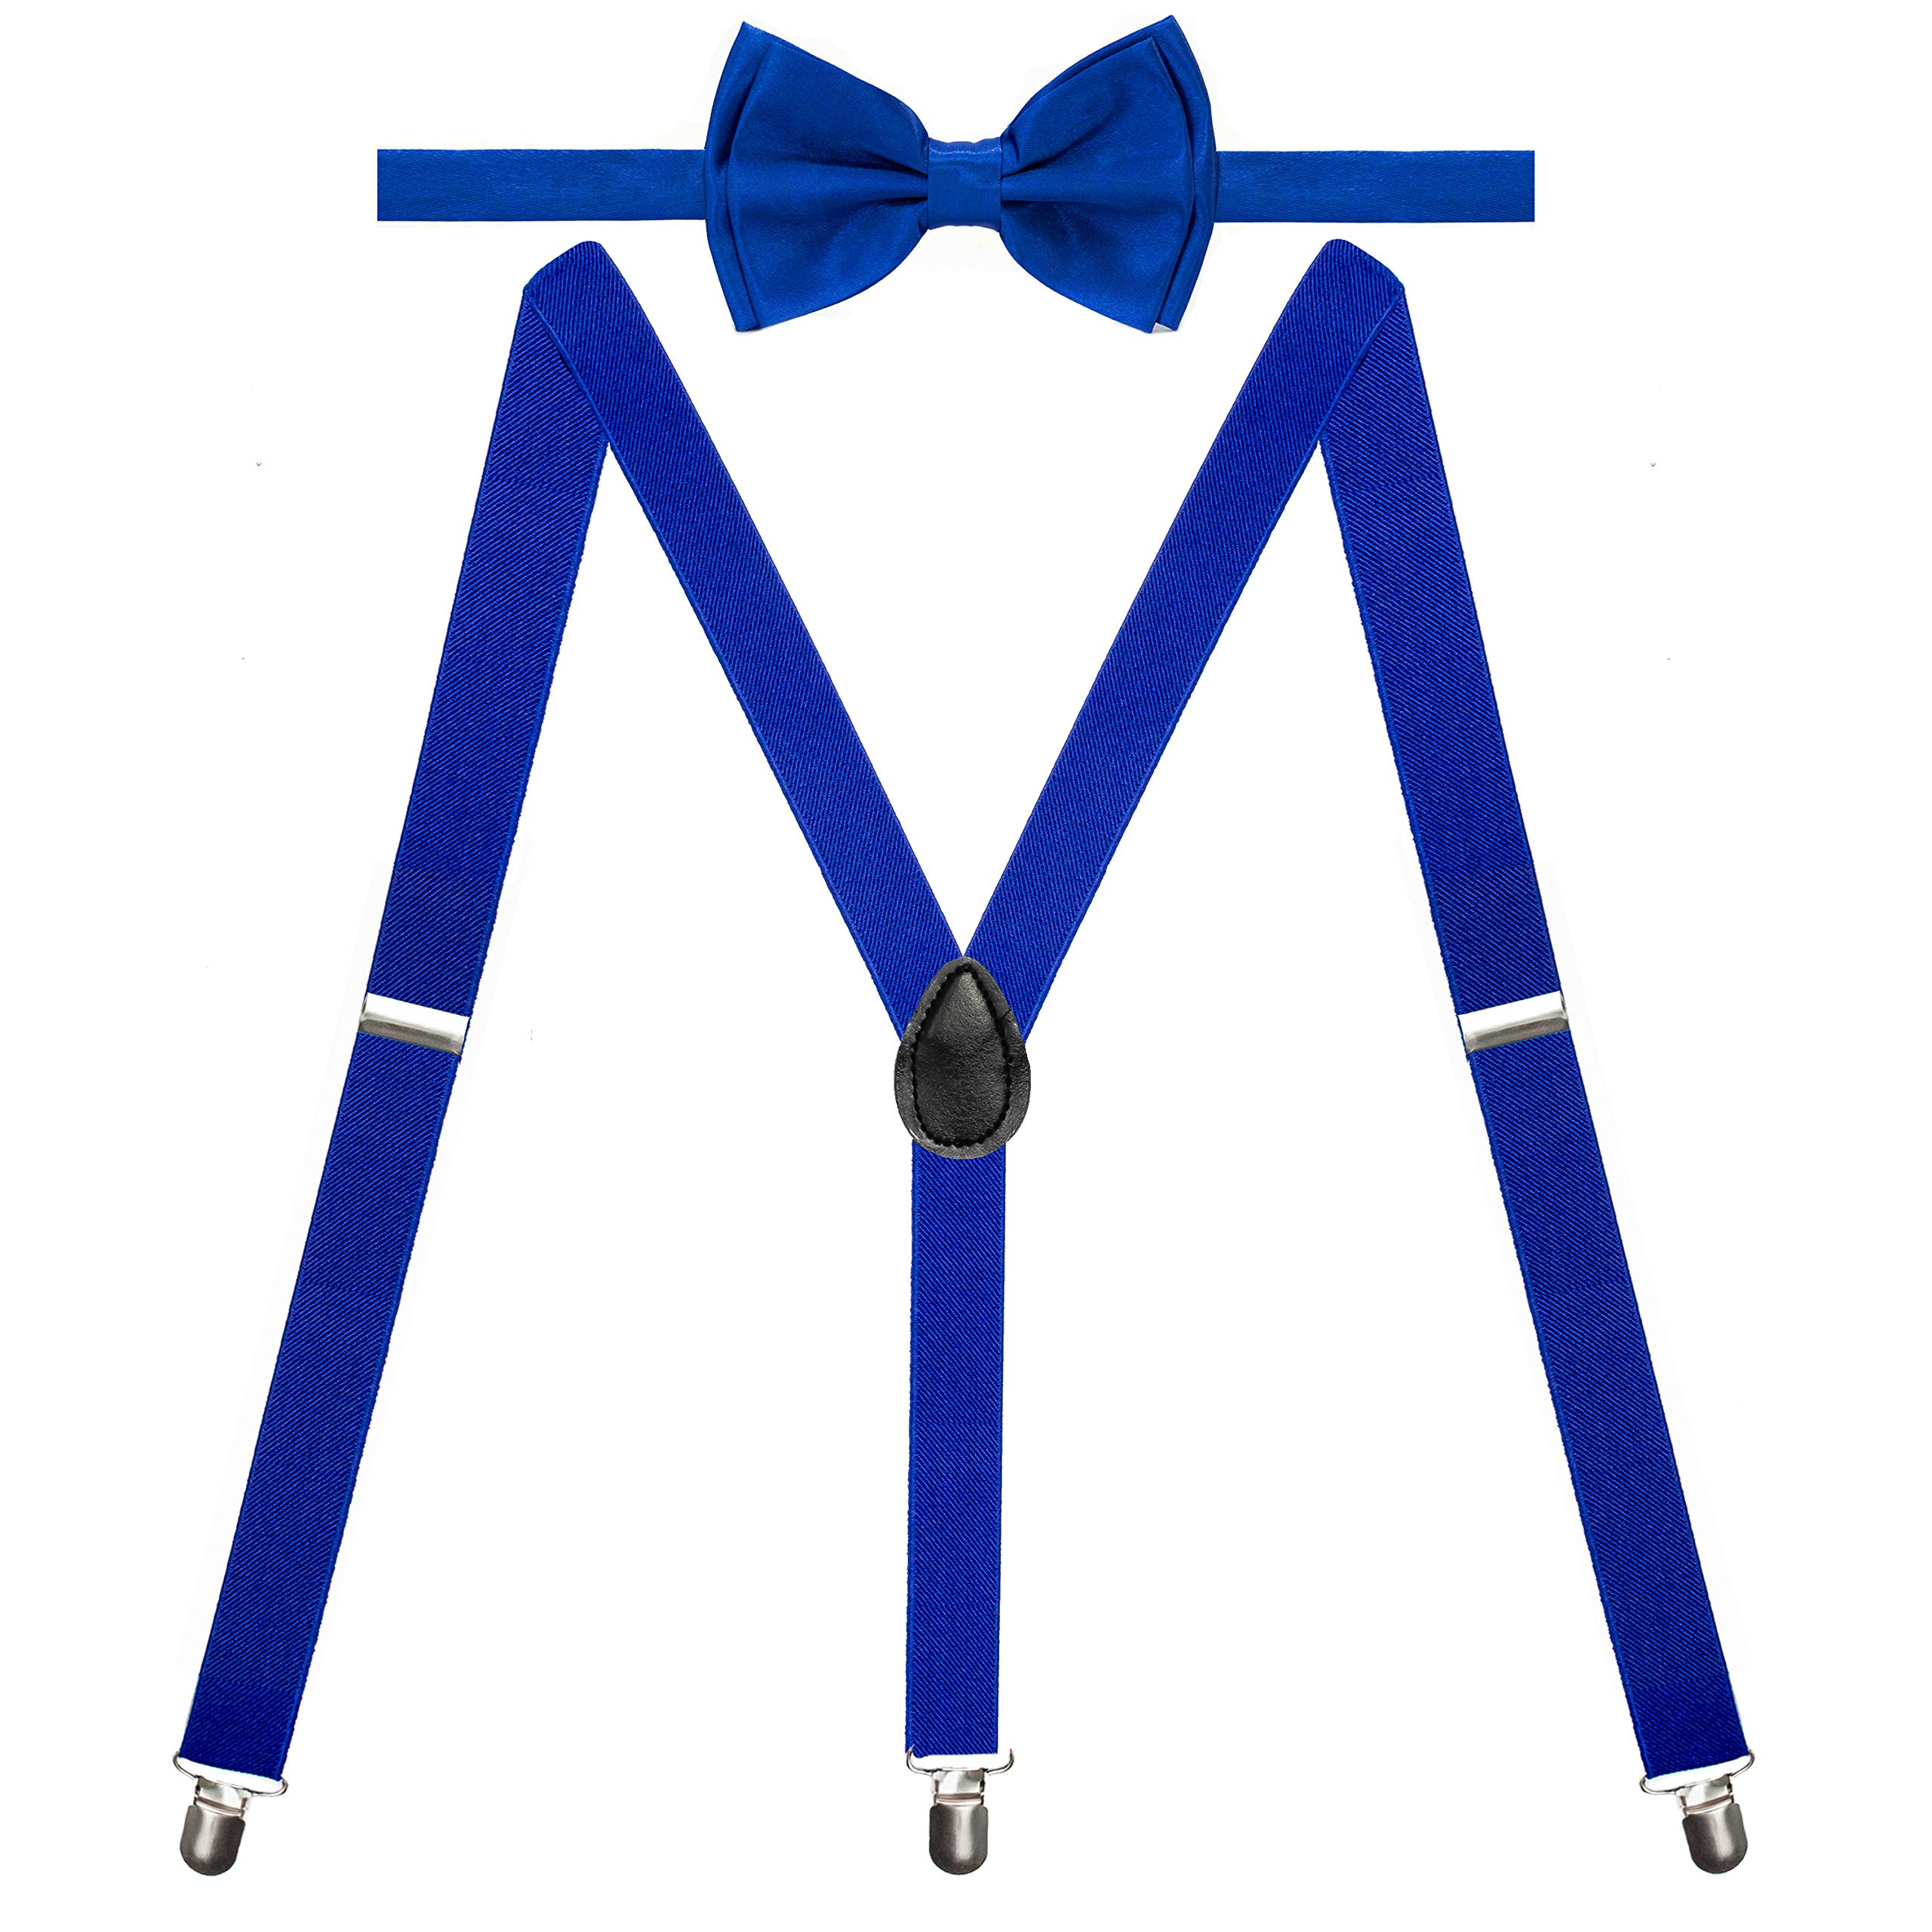 Y-Back Suspenders and Bow Tie Matching Set, Pre-Tied, Clip Design, Elastic, Adjustable Straps, Classic   Great for Weddings,Parties,Graduations, Theme Party   Nice&Unique Gifts for Men (Royal Blue) by Coster (Image #2)